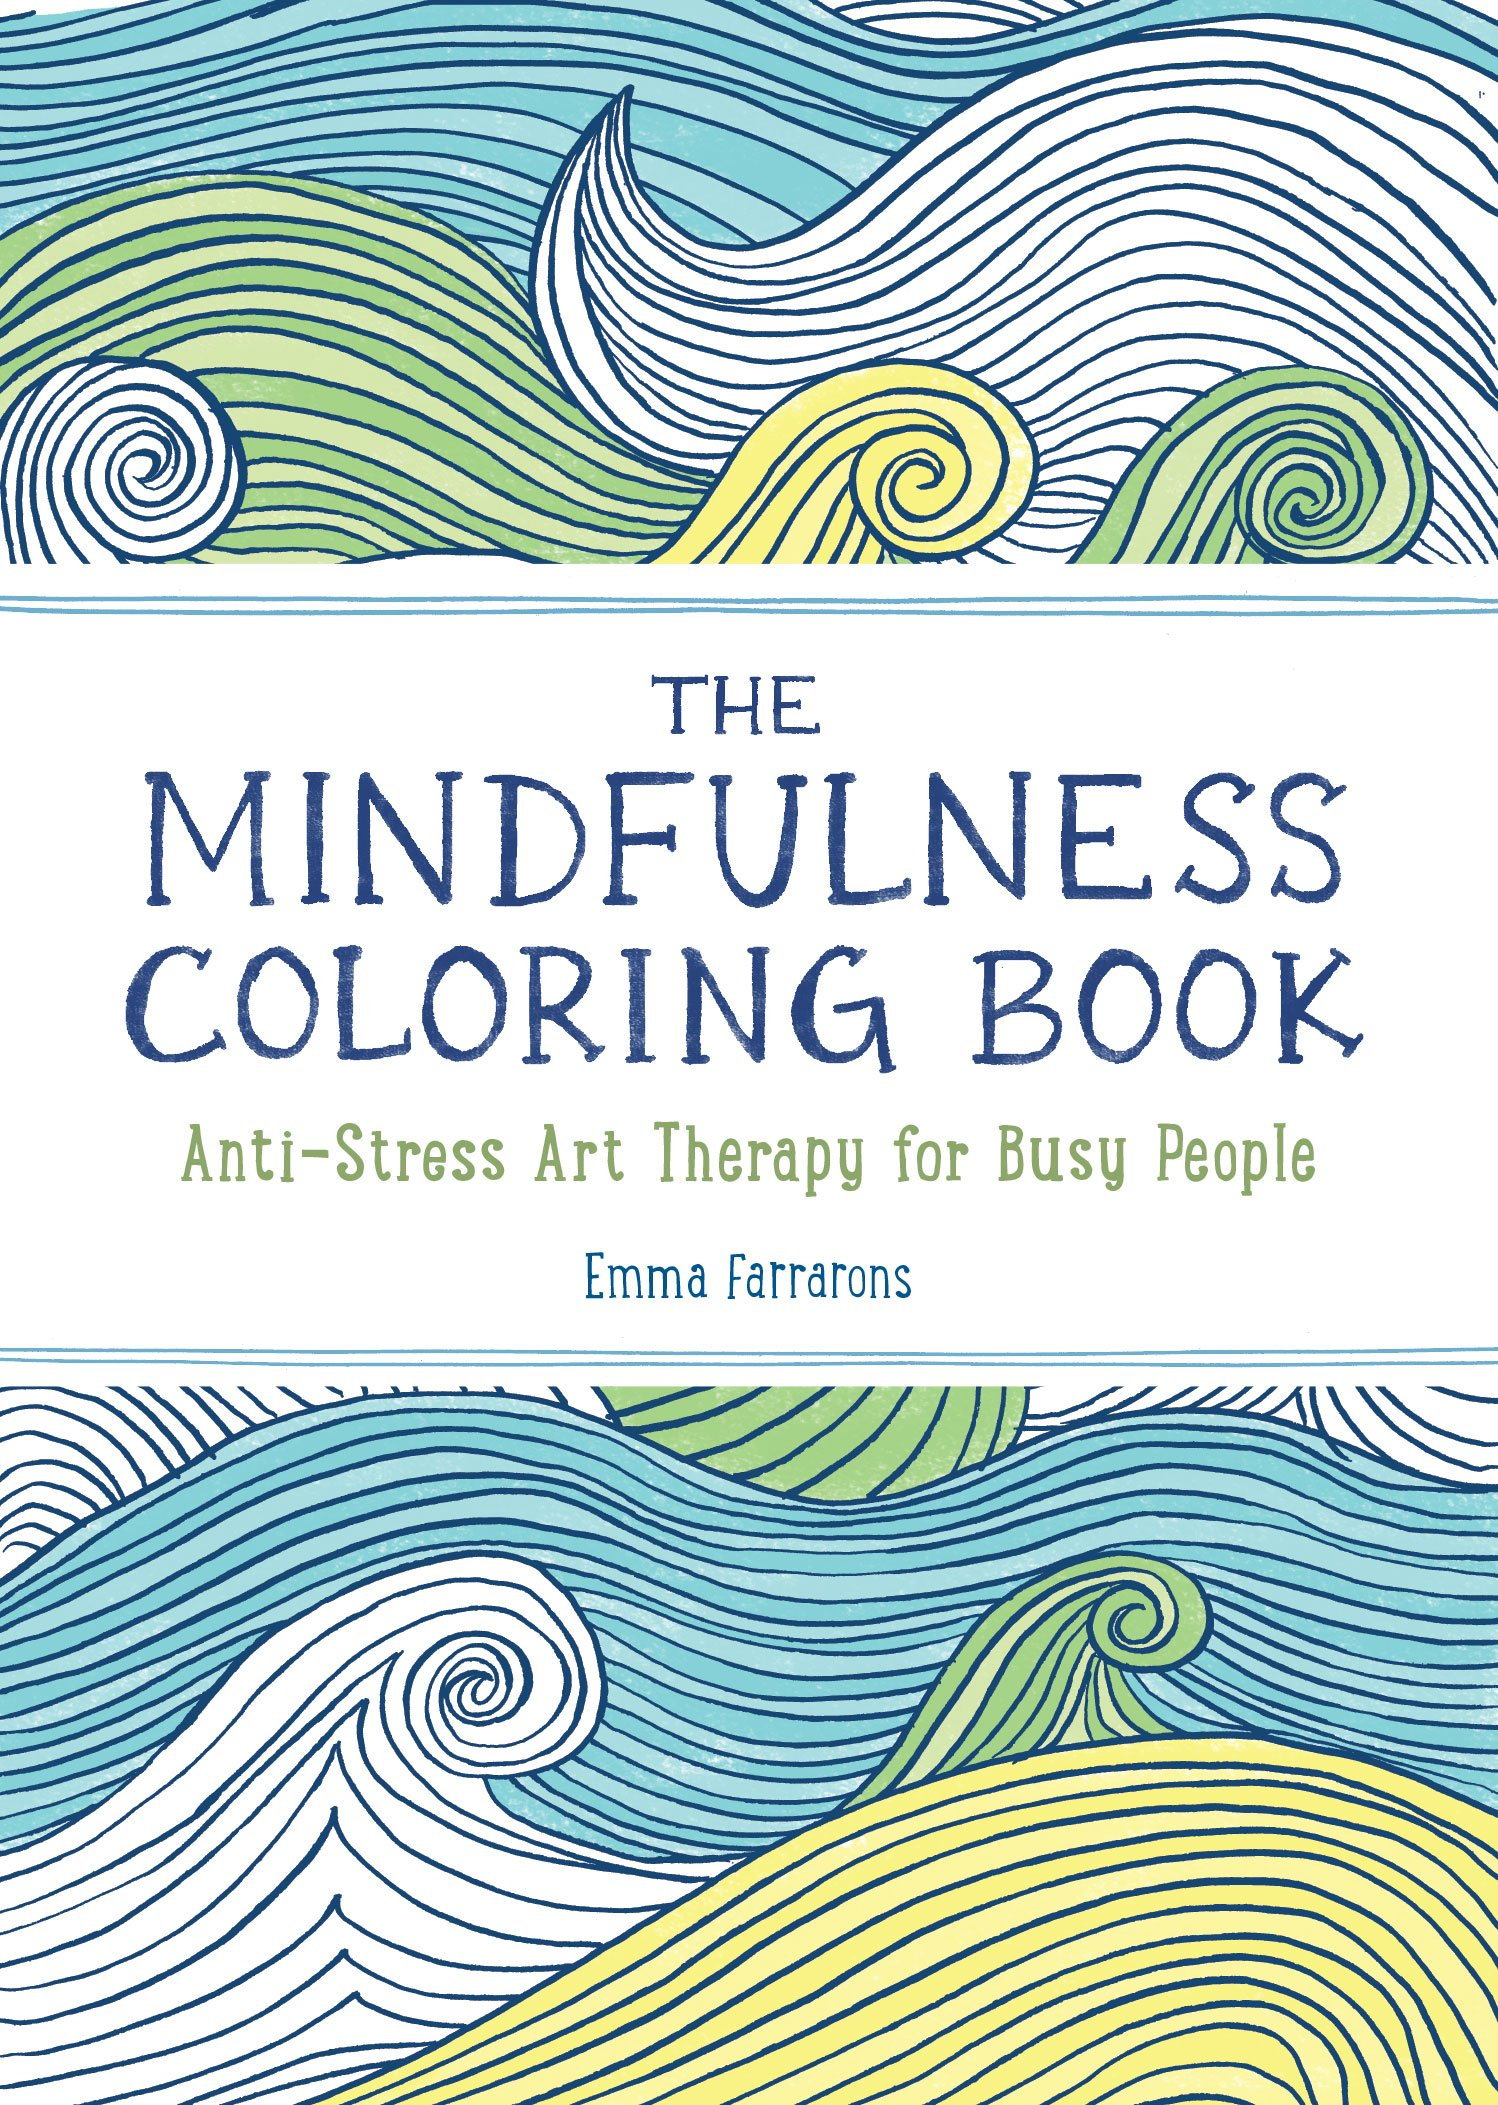 - Amazon.com: The Mindfulness Coloring Book: Anti-Stress Art Therapy